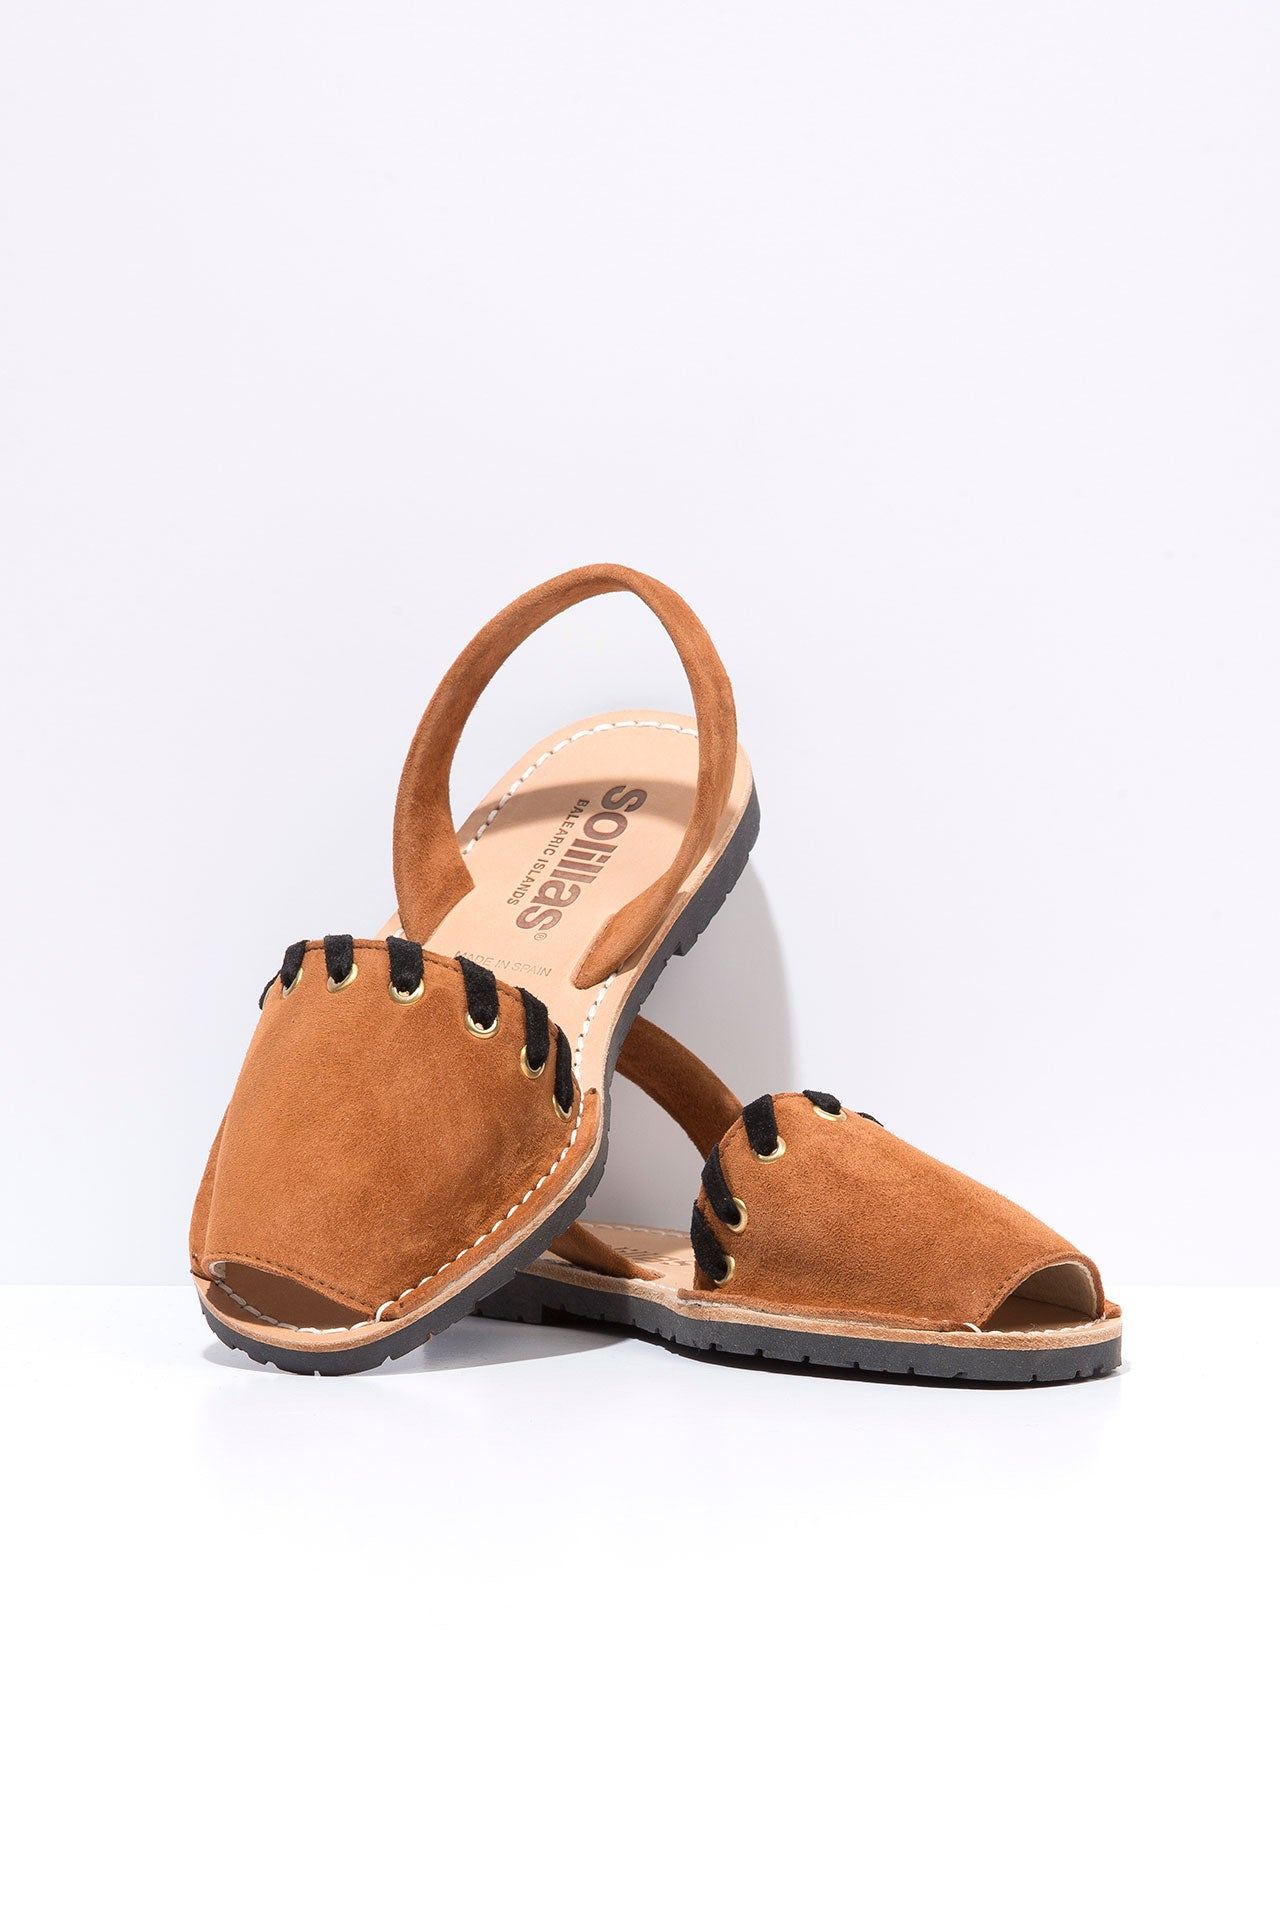 Vaquero Tan - Whipstitch Leather Menorcan sandals